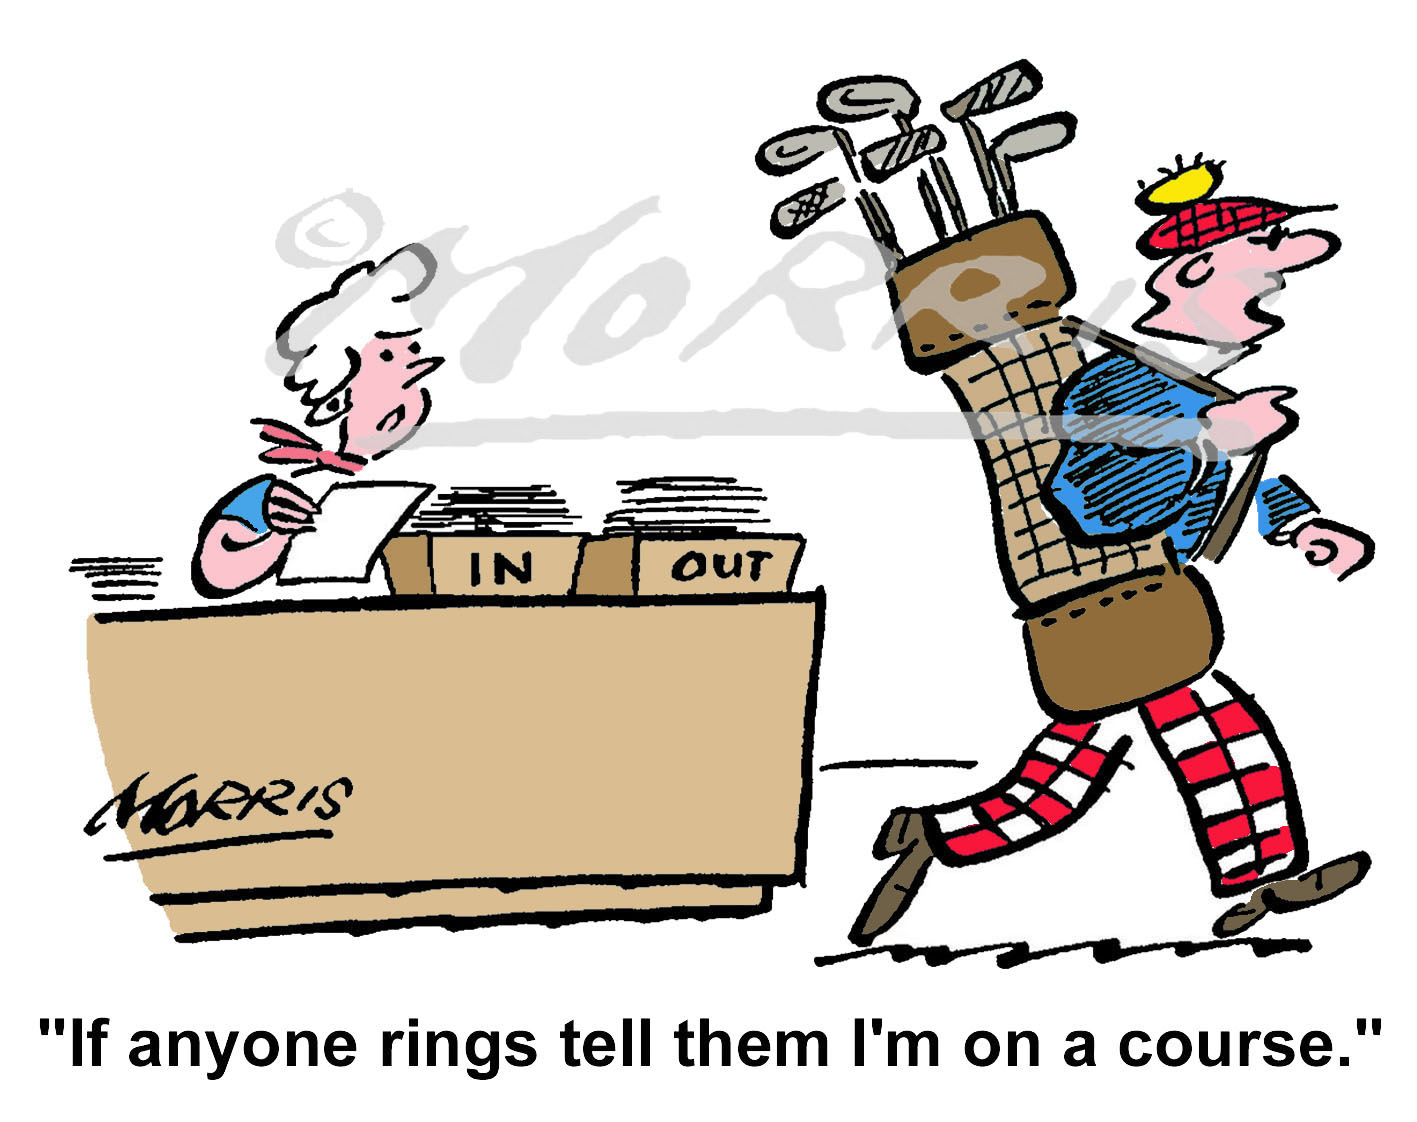 Golf cartoon, golfing cartoon, golf course cartoon, – Ref: 1021col